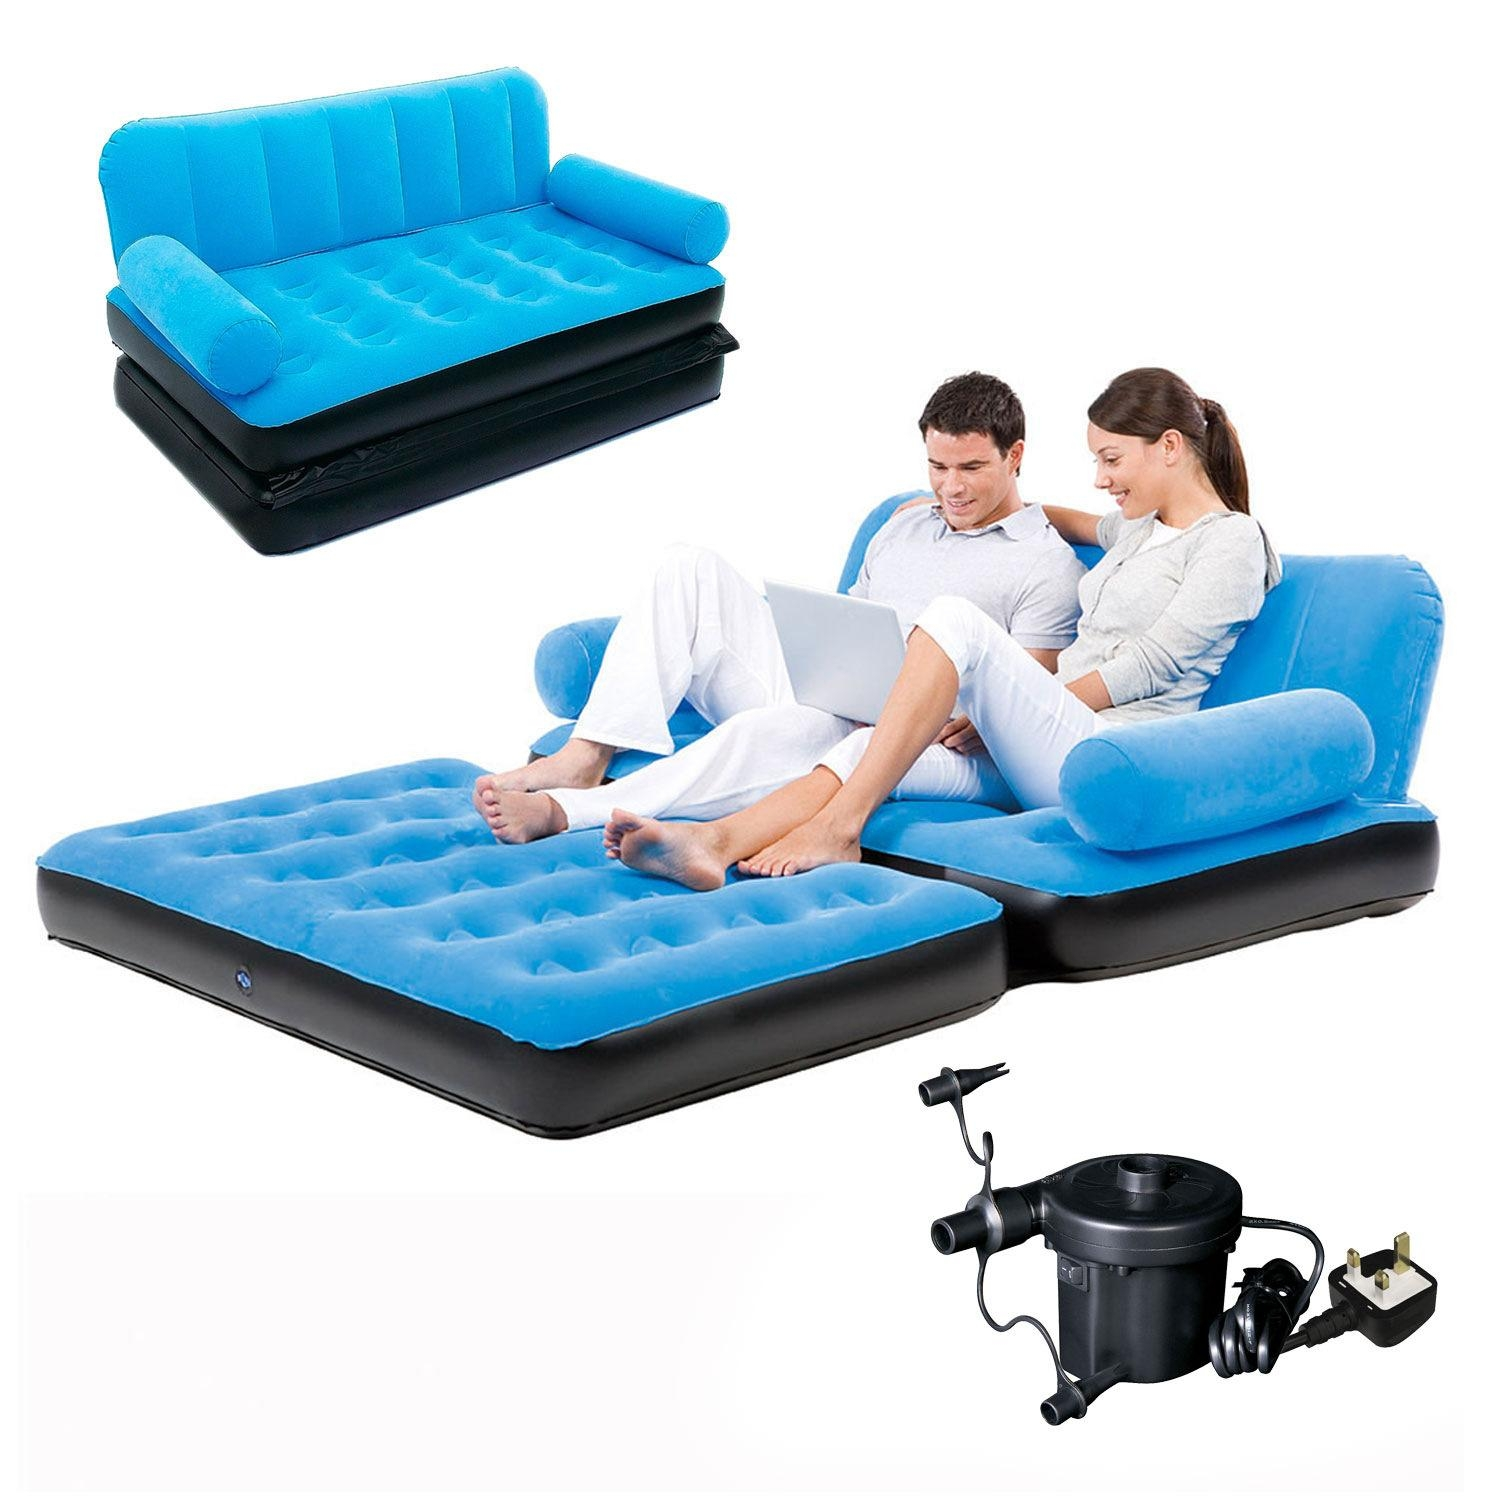 Inflatable Sofa Bed | Roselawnlutheran Inside Intex Inflatable Sofas (Image 1 of 20)